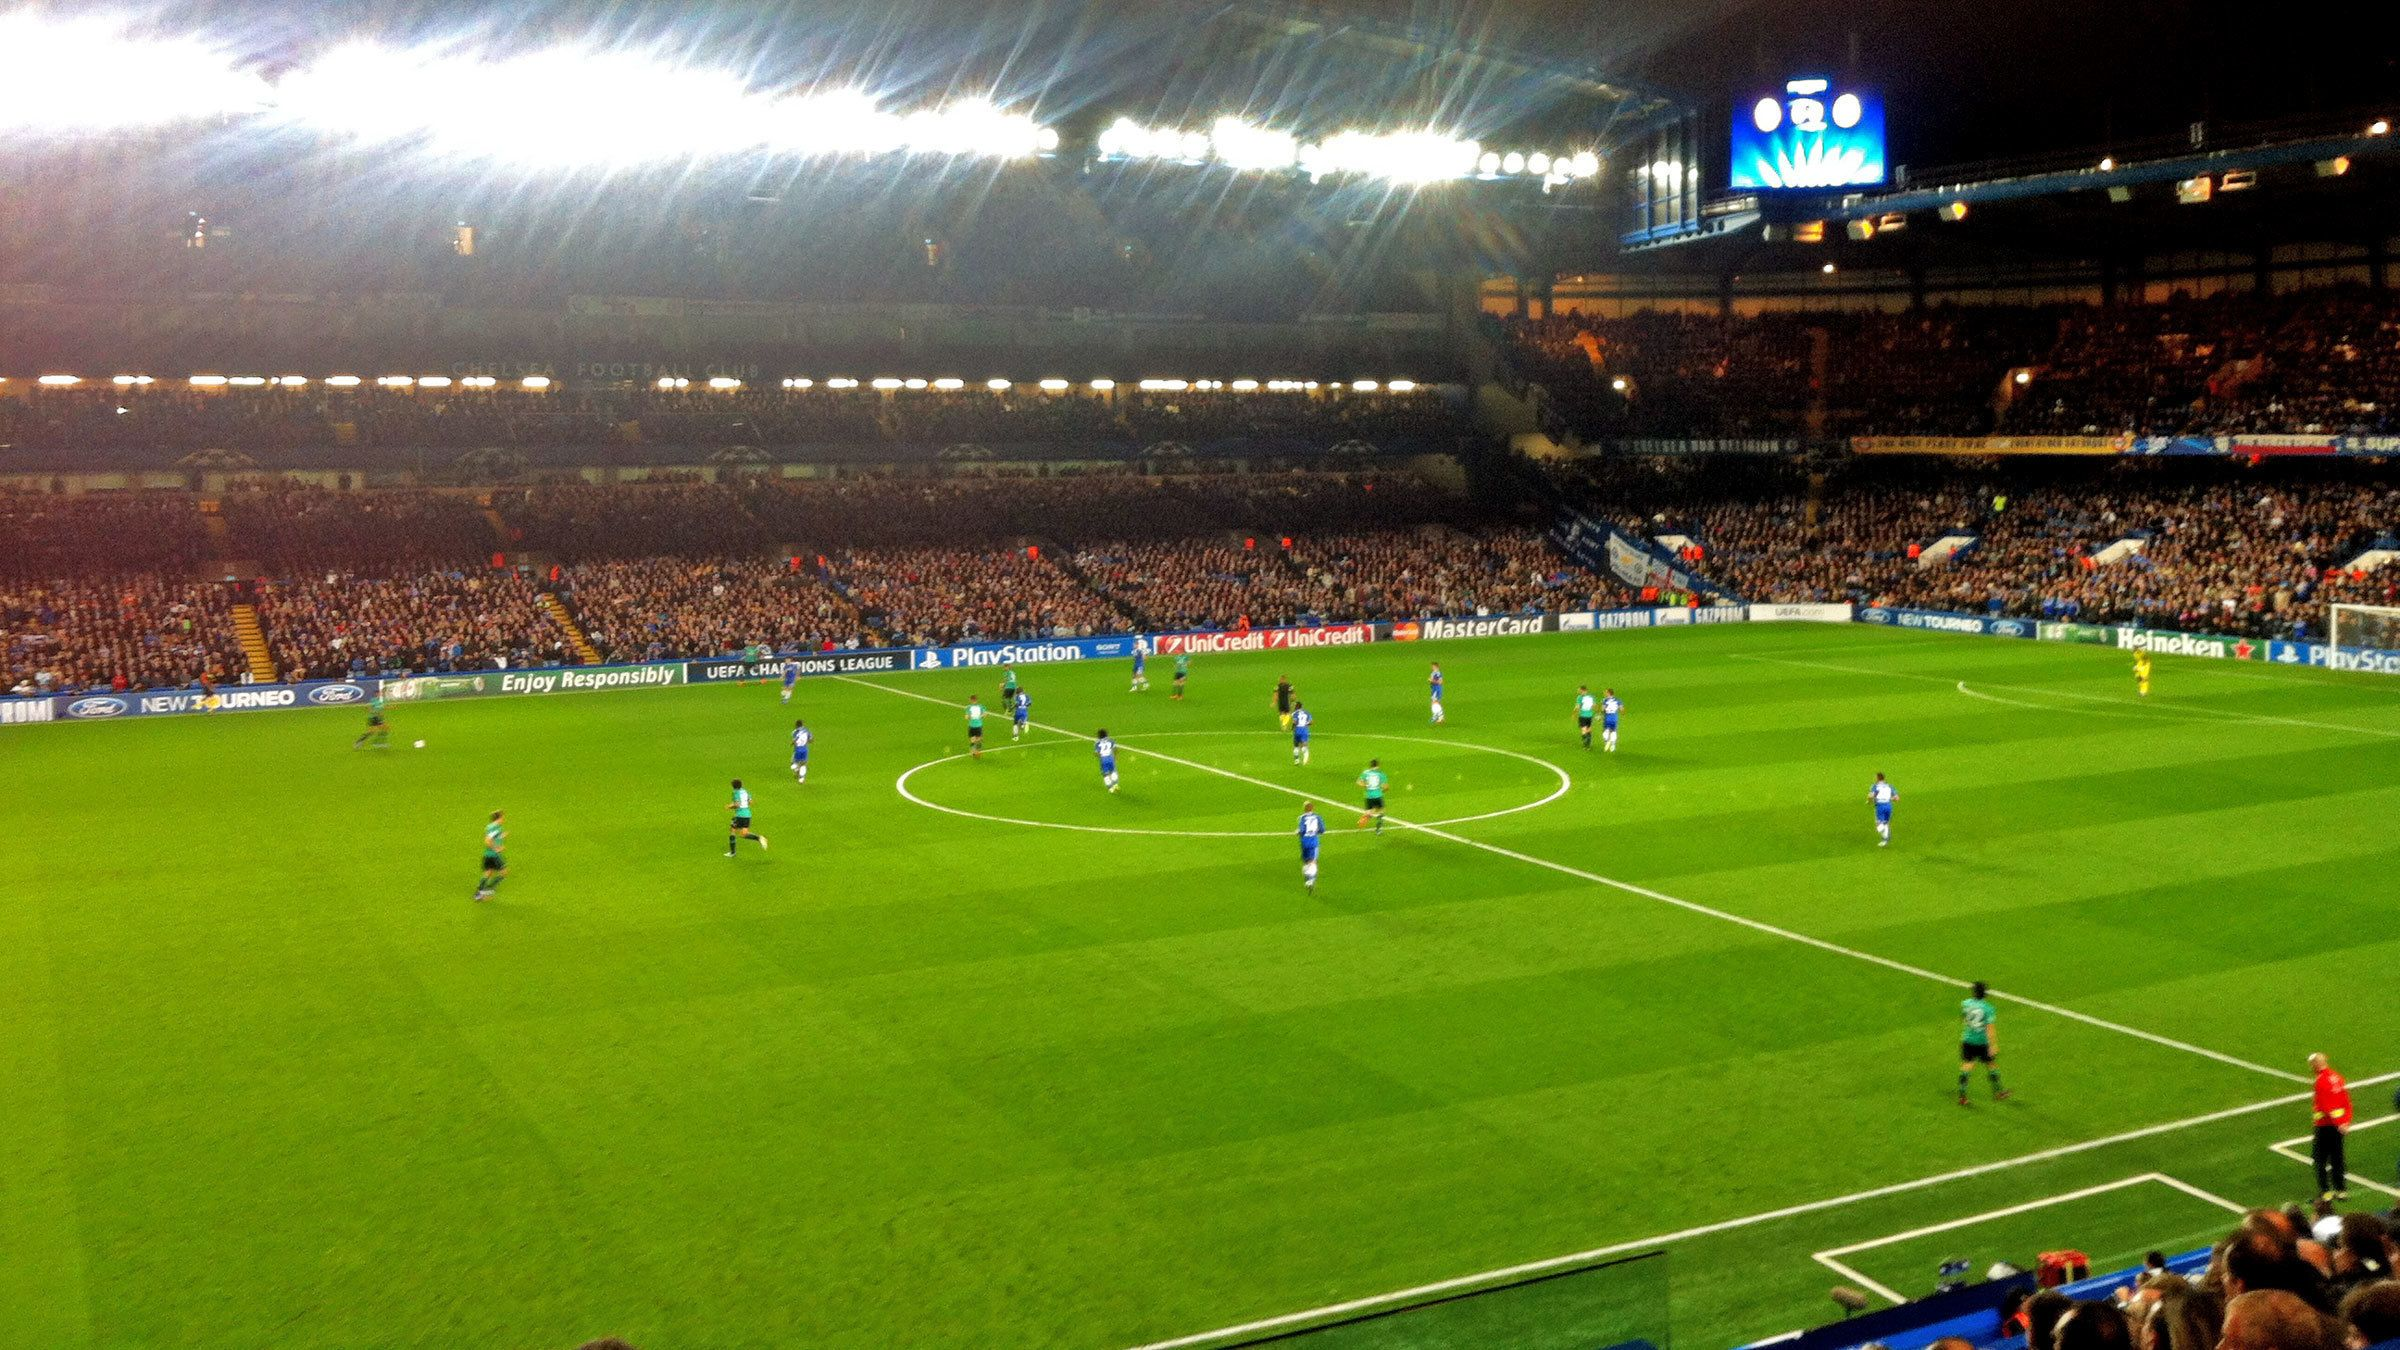 Matching continuing under stadium lights at Stamford Bridge Stadium